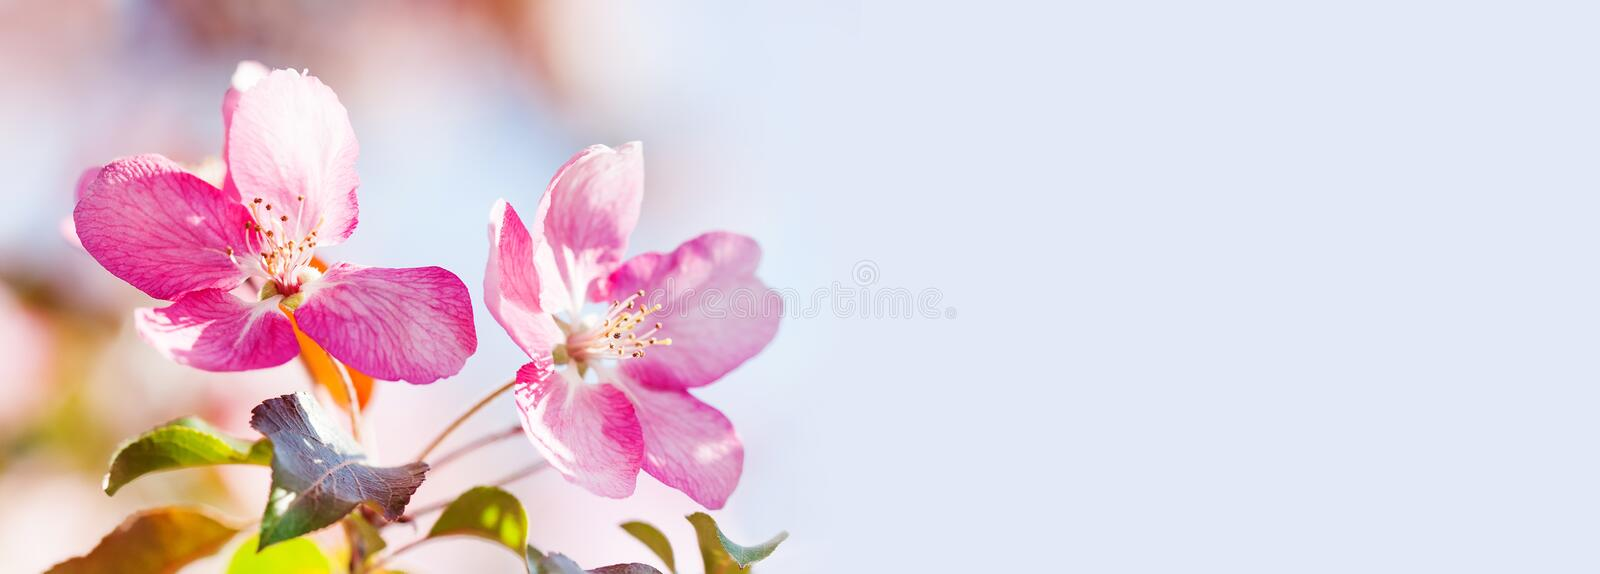 Close-up pink flowers spring background. Soft and tender cherry blossom tree branch, copy space stock photo